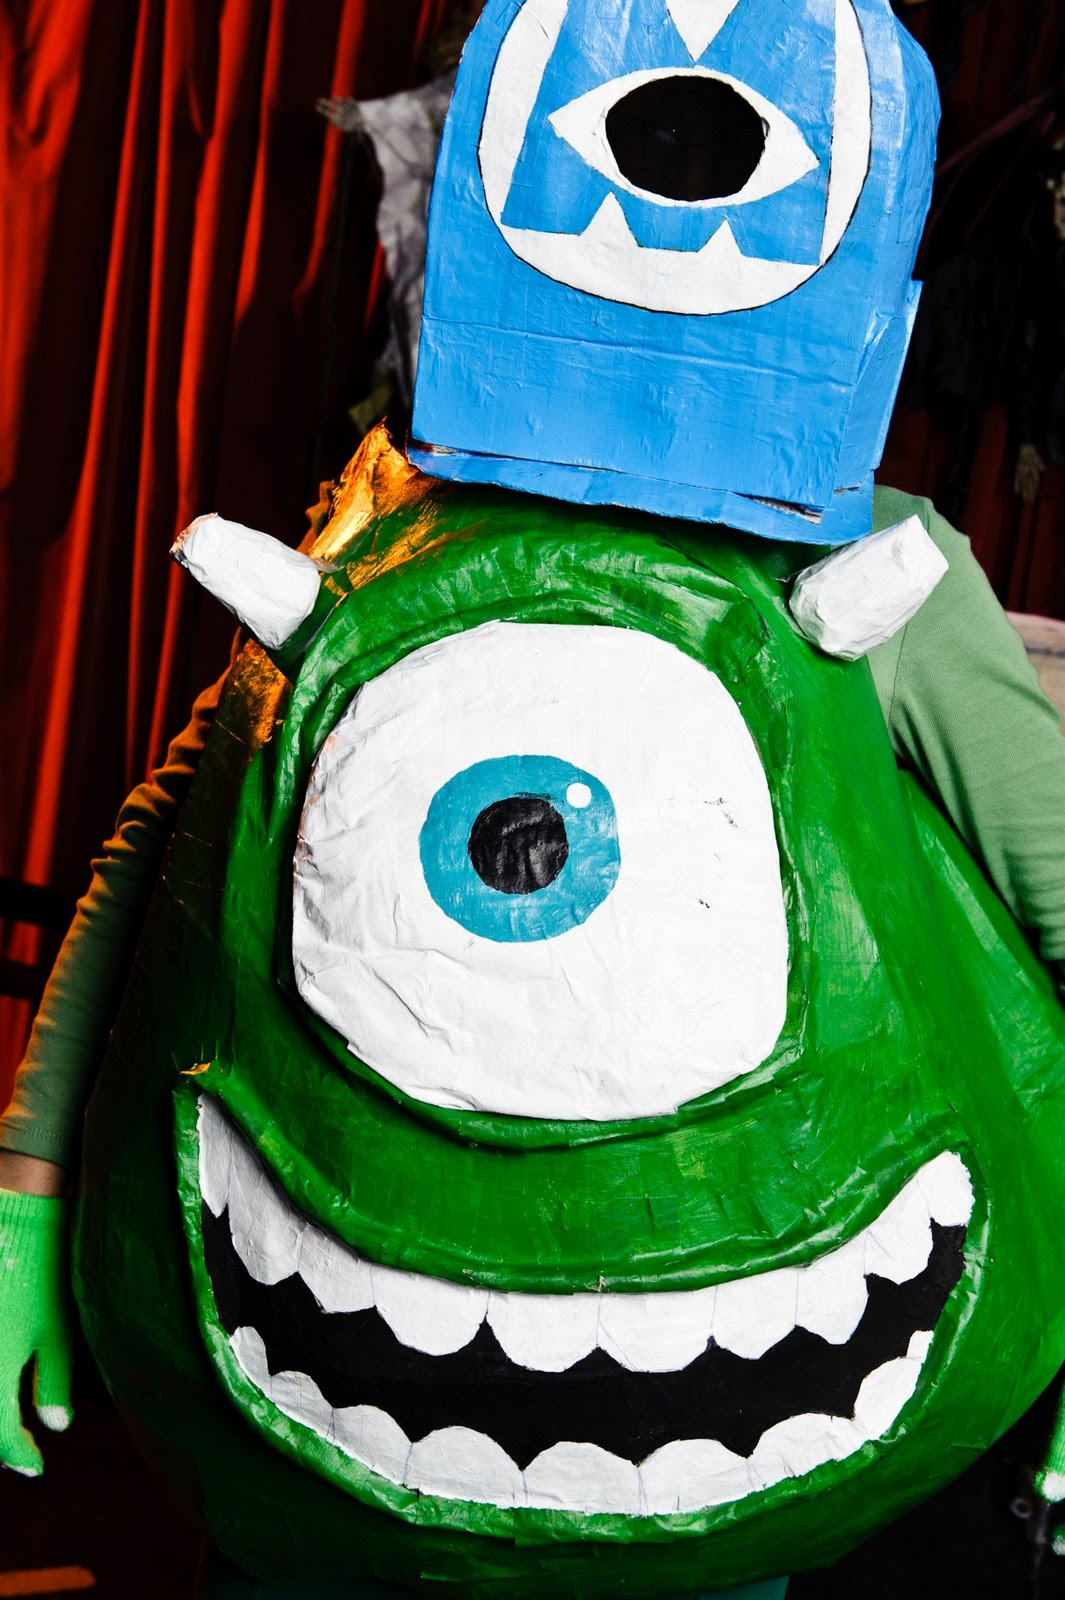 Pop Culture Costumes Fully Built Mike Wazowski